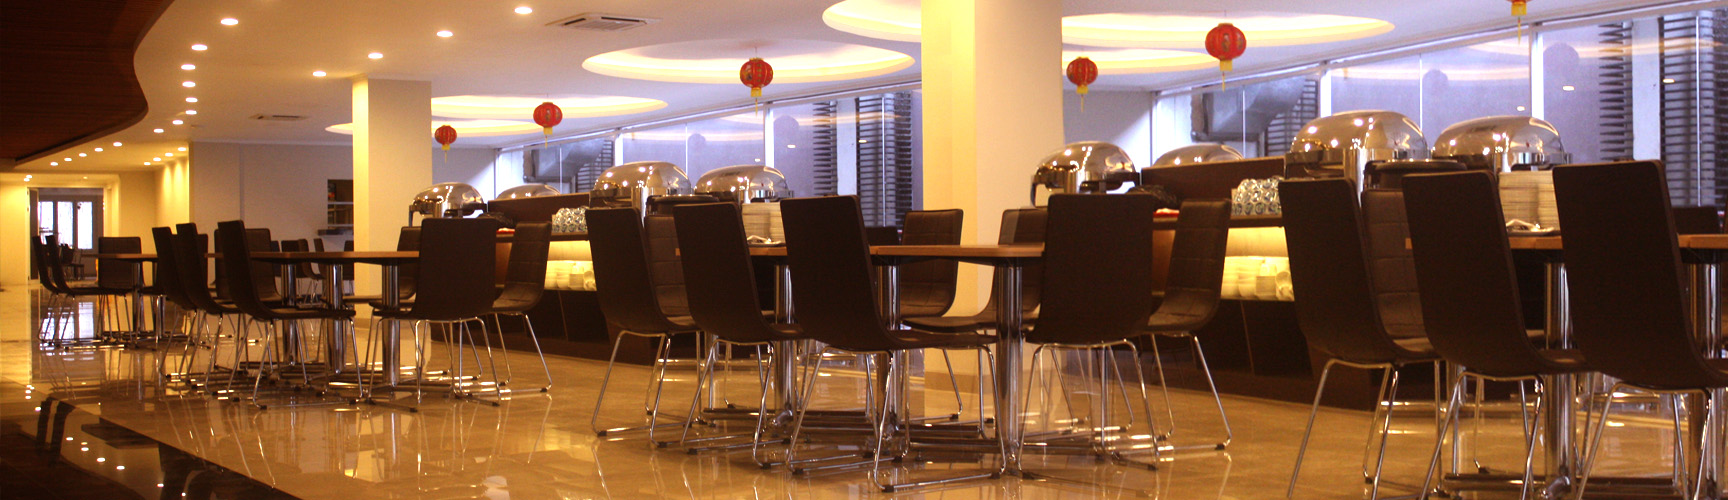 New Rooms Meeting Room Lounge Restaurant And Entire Facilitie